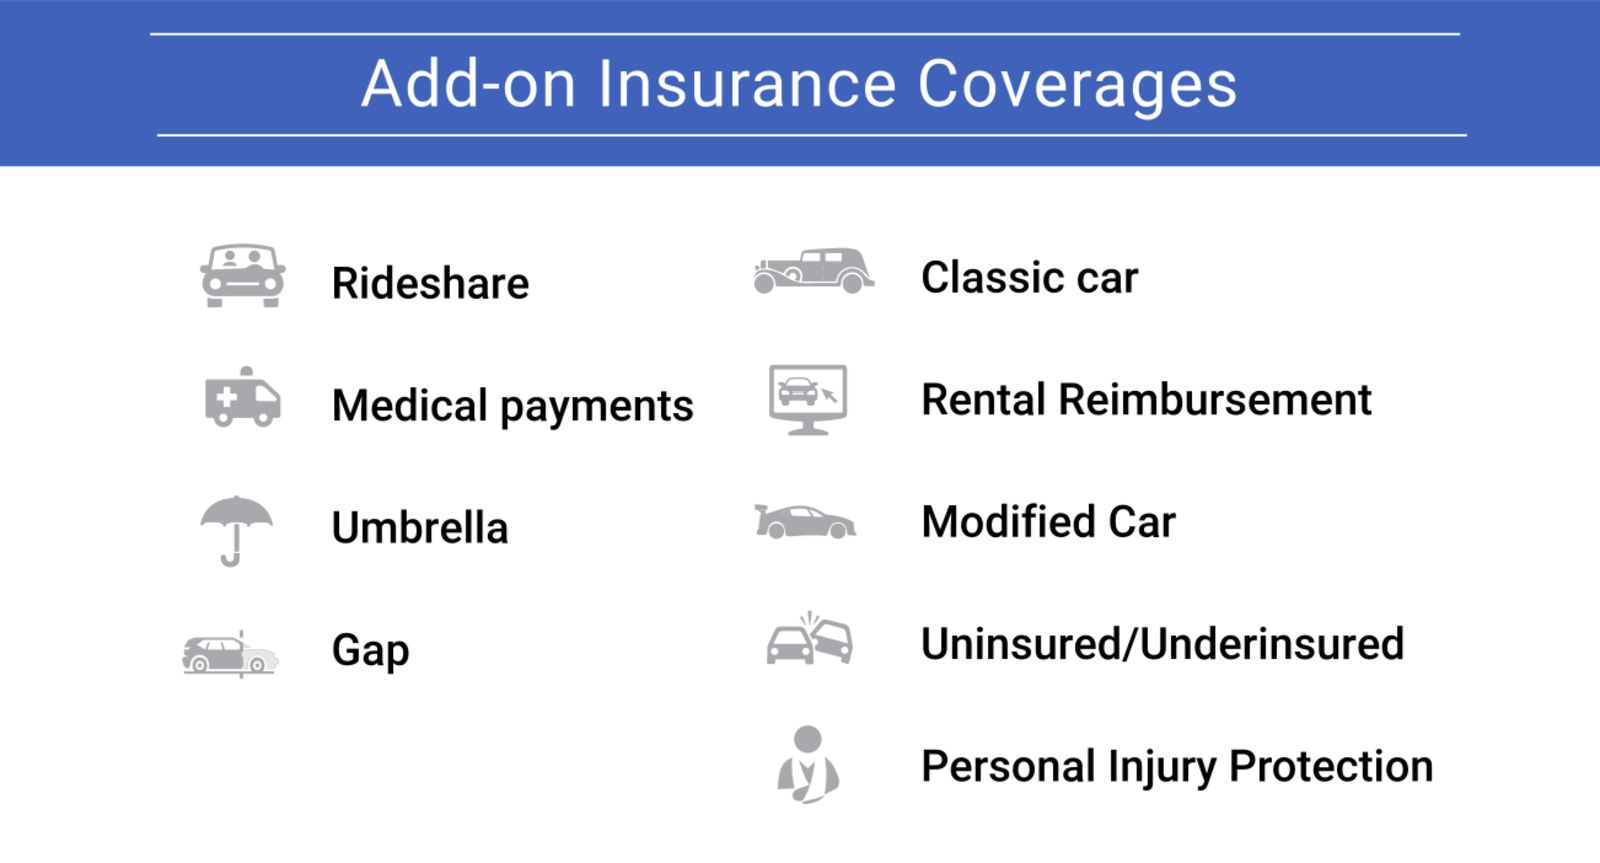 Add-on Insurance Coverages